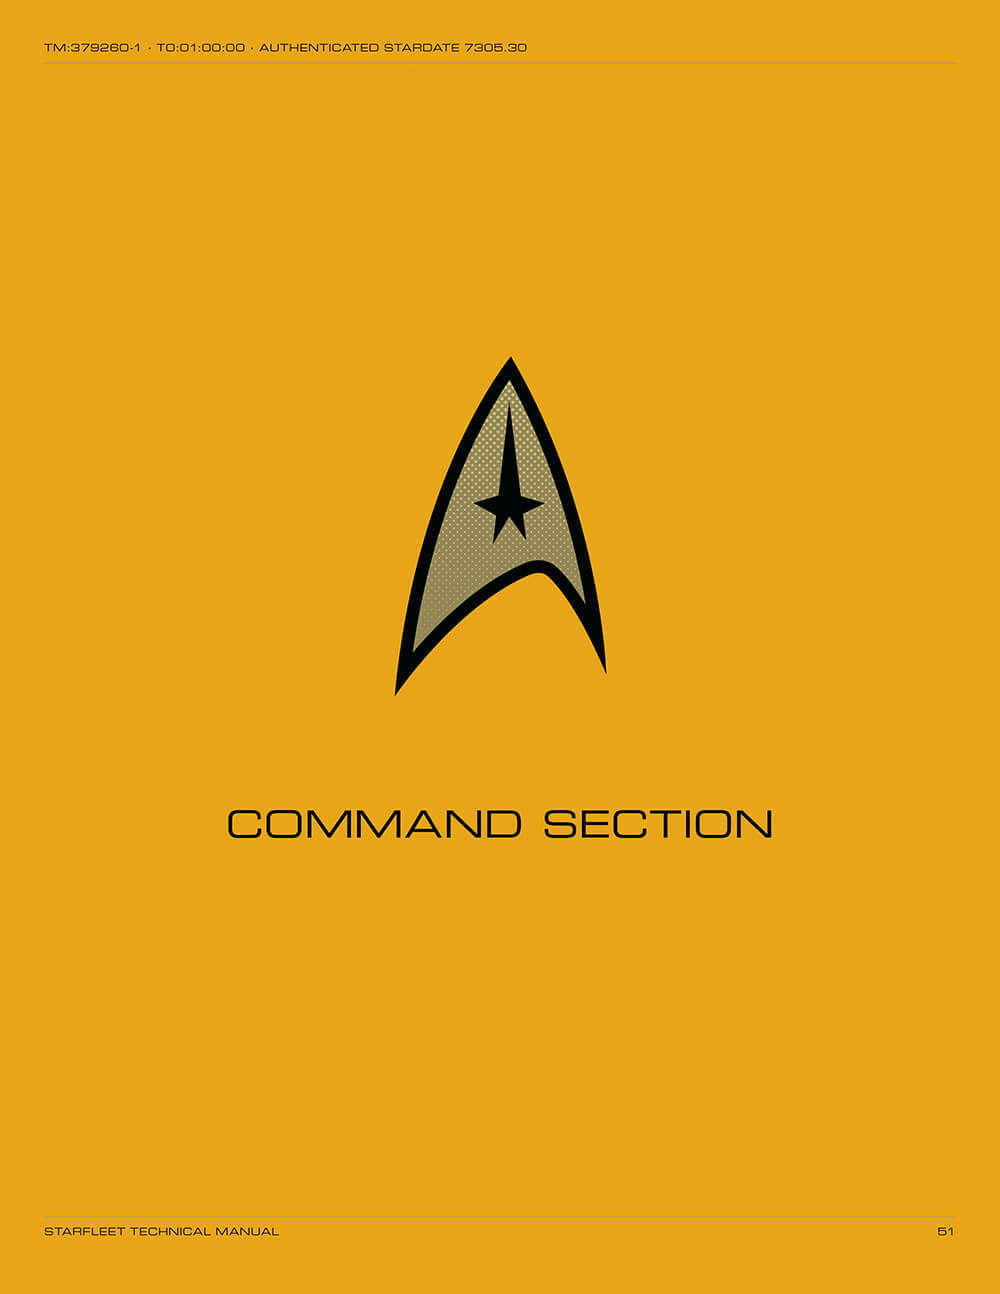 Star Trek Technical Manual 2 63